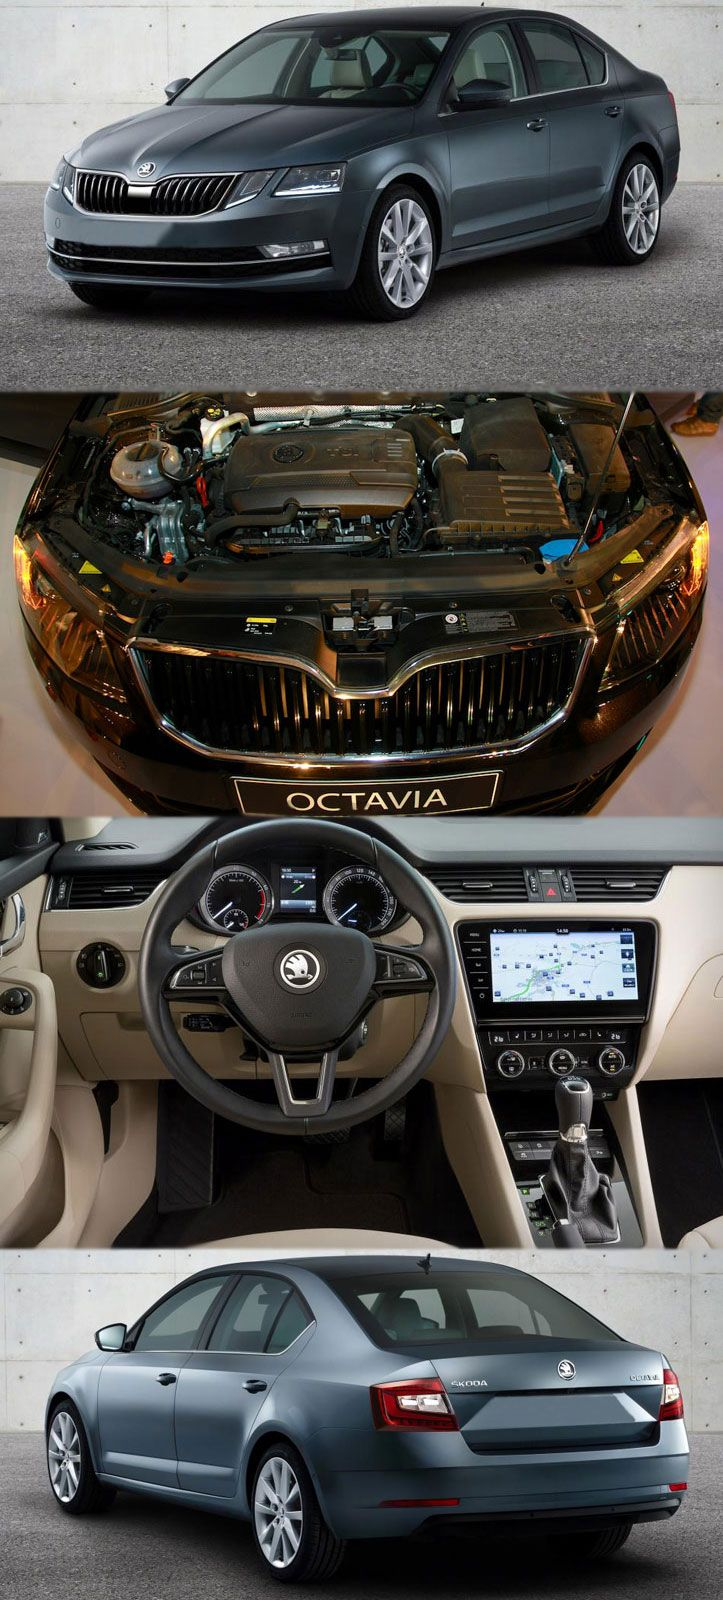 SKODA OCTAVIA BORROWS SOME STYLE FROM THE KODIAQ More Details at: https://www.dieselenginerus.co.uk/blog/skoda-octavia-borrows-style-kodiaq/